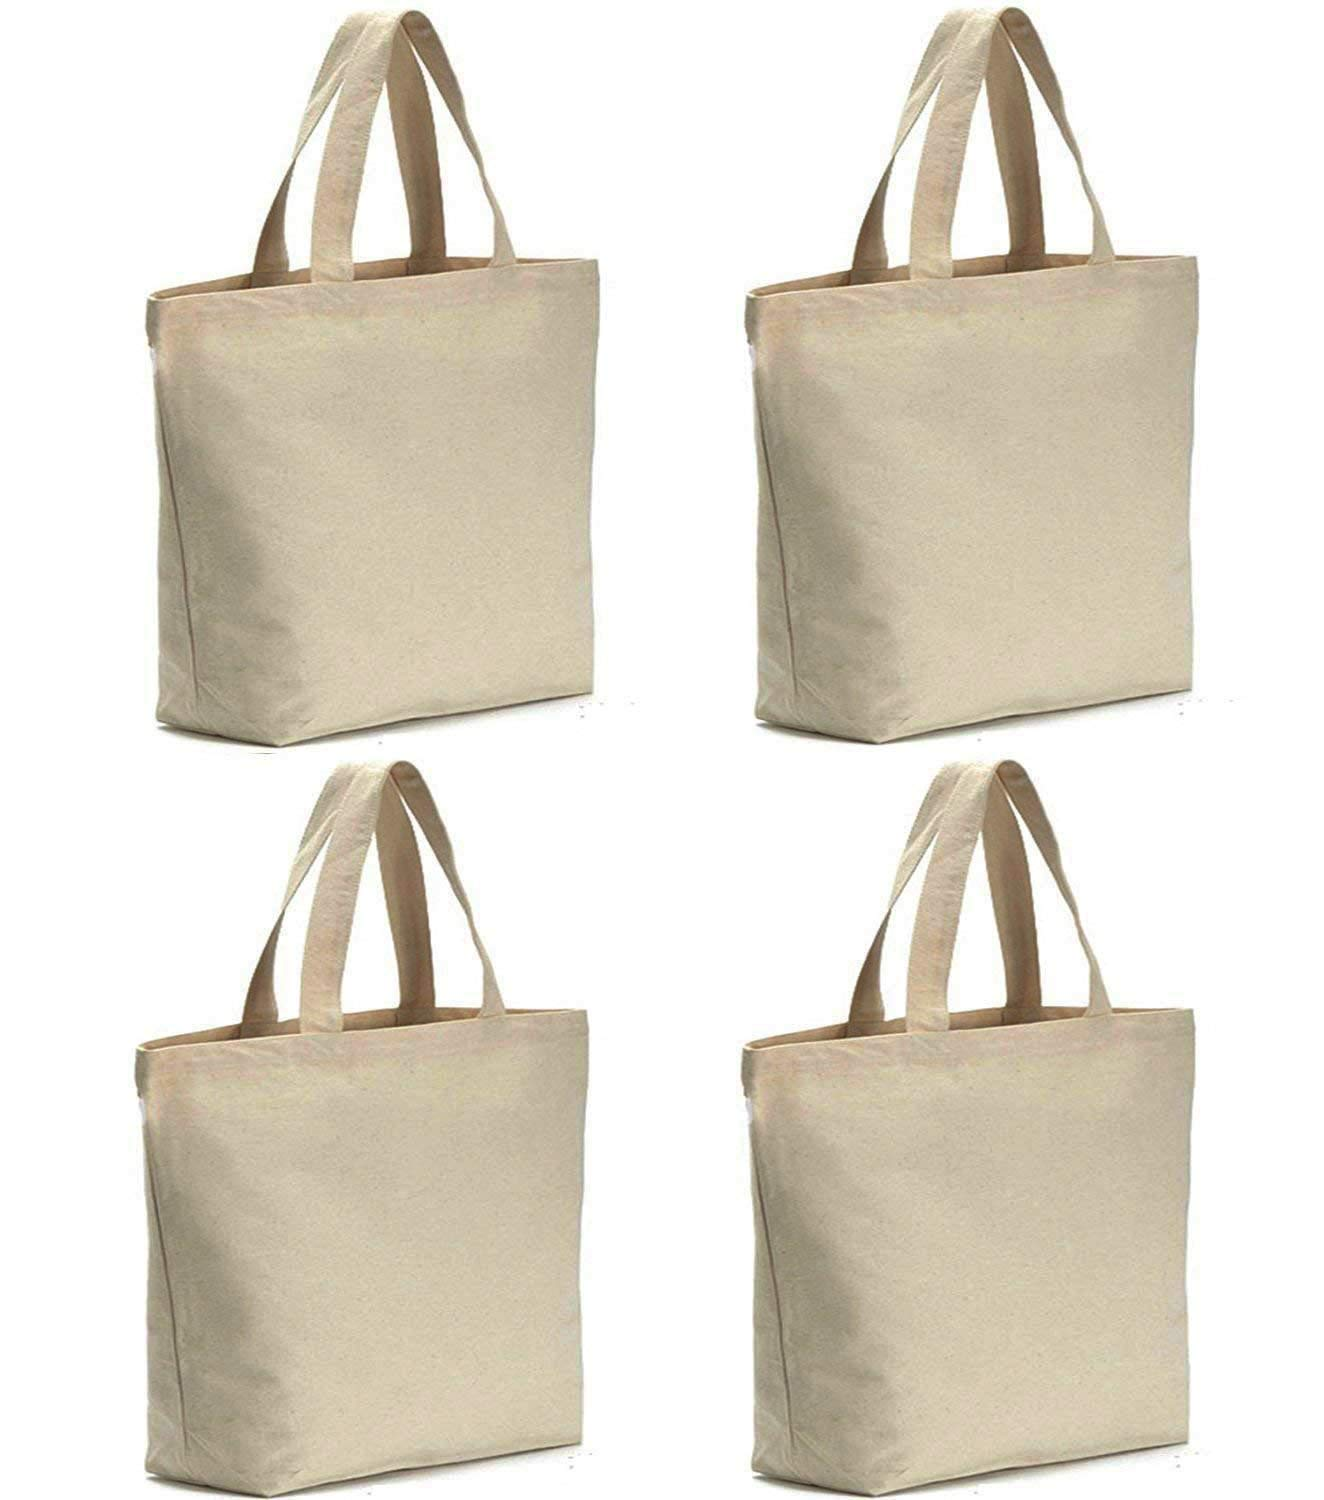 Axe Sickle 4PCS Canvas Tote Bag Bottom Gusset 16 X 16 X 4.6 inch Heavy 12oz Tote Shopping Bag, Washable Grocery Tote Bag, Craft Canvas Bag With ...